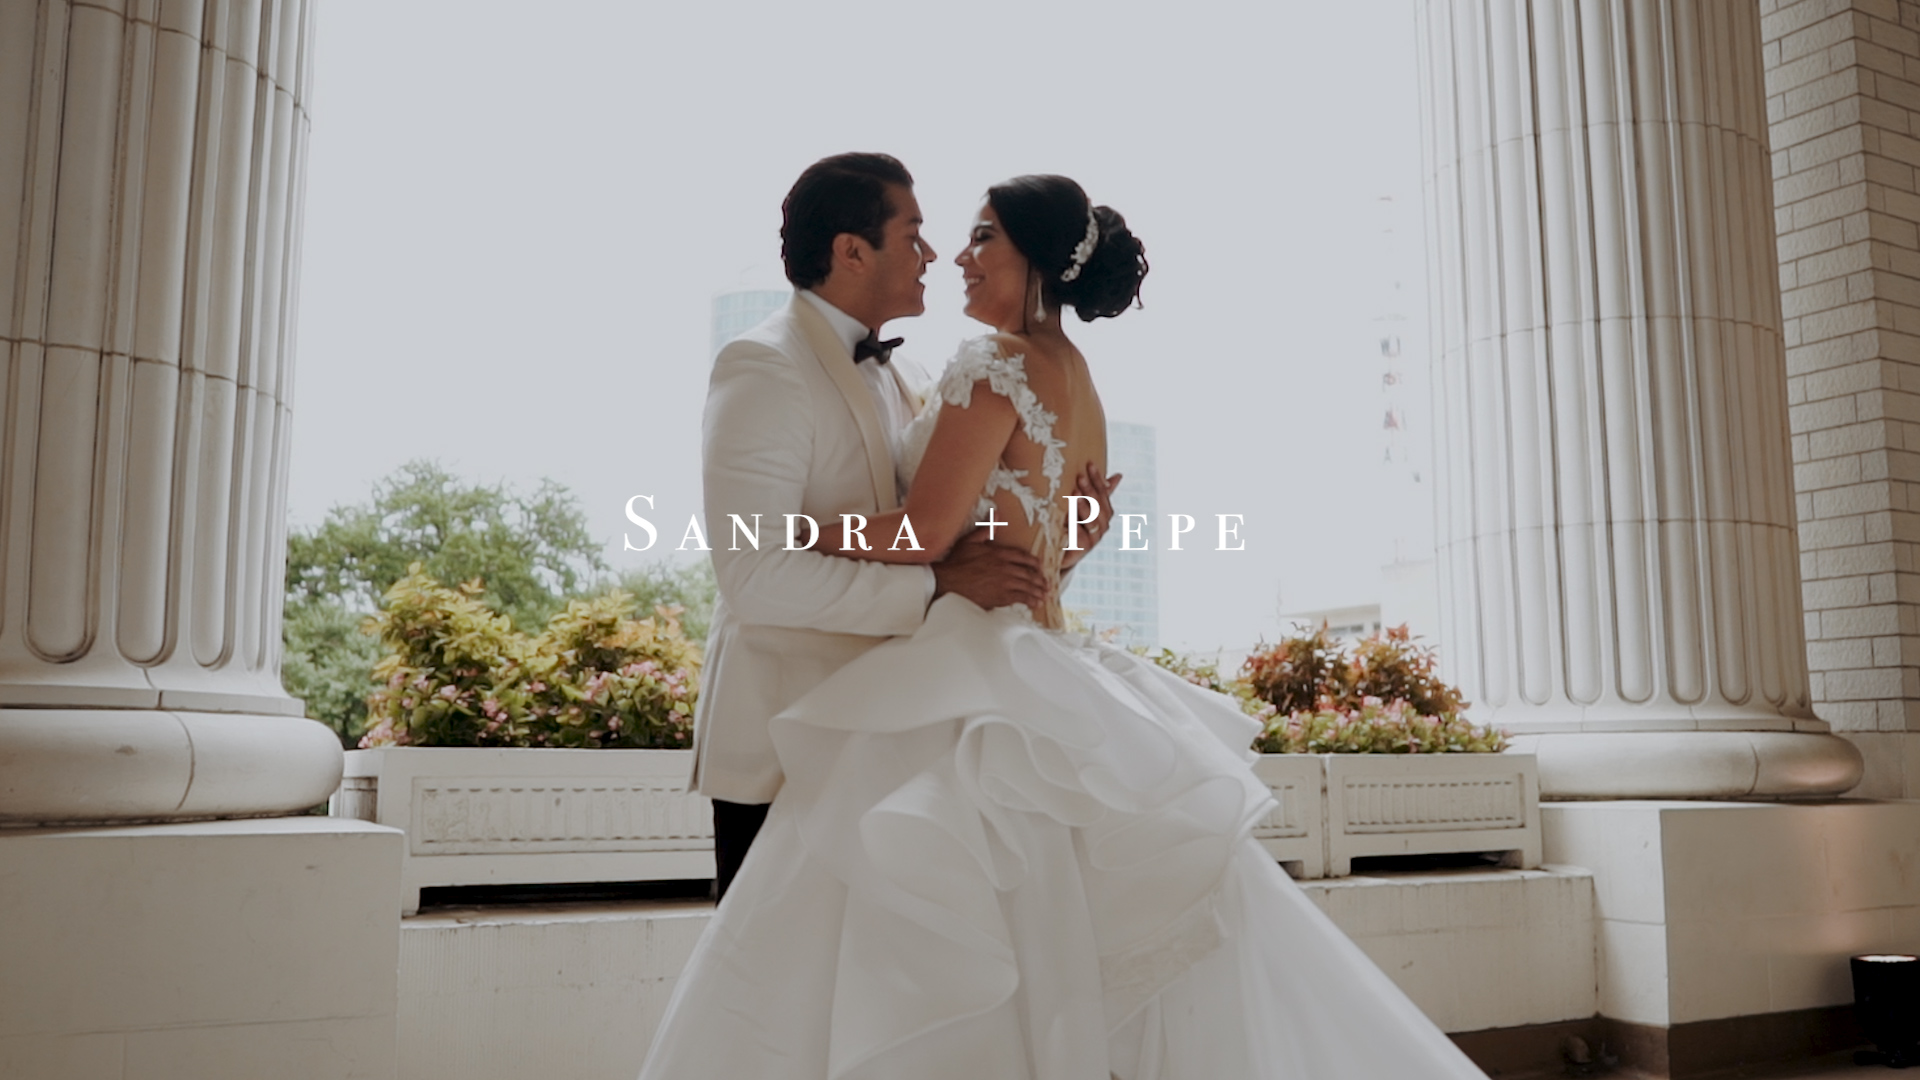 Sandra + Pepe | Dallas, Texas | Union Station Dallas